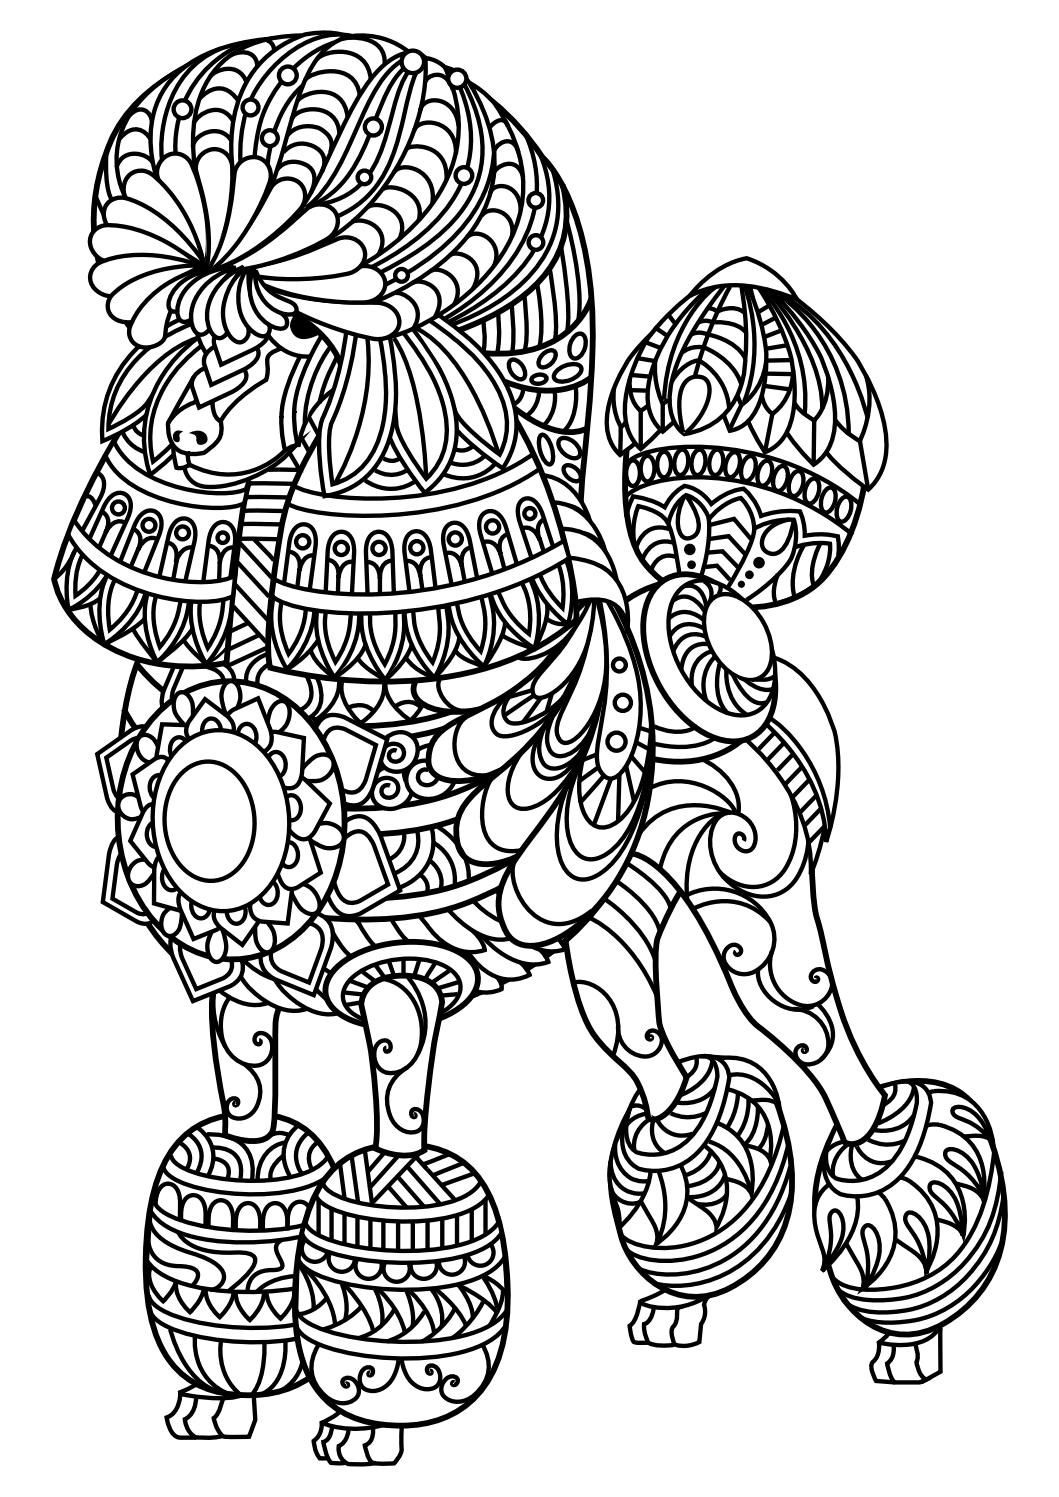 Animal Coloring Pages Pdf Adult Coloring Coloring Books And Dog Cat